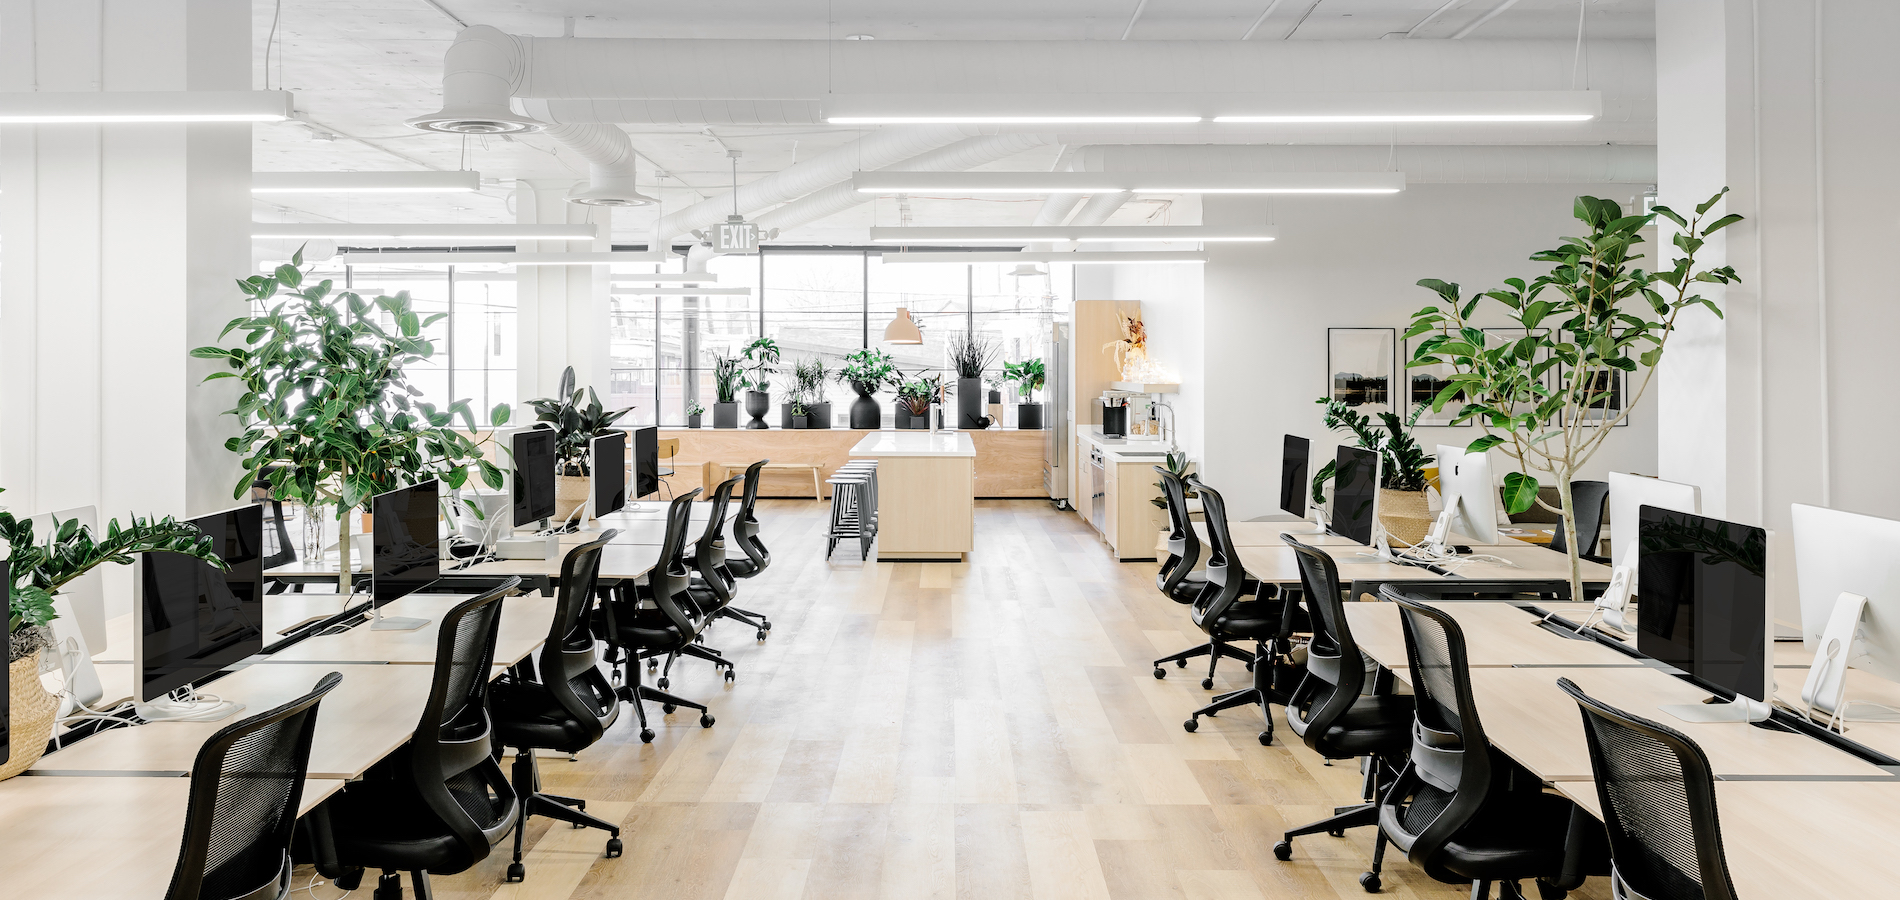 10 Office Design Ideas To Breathe Life Into Your Space